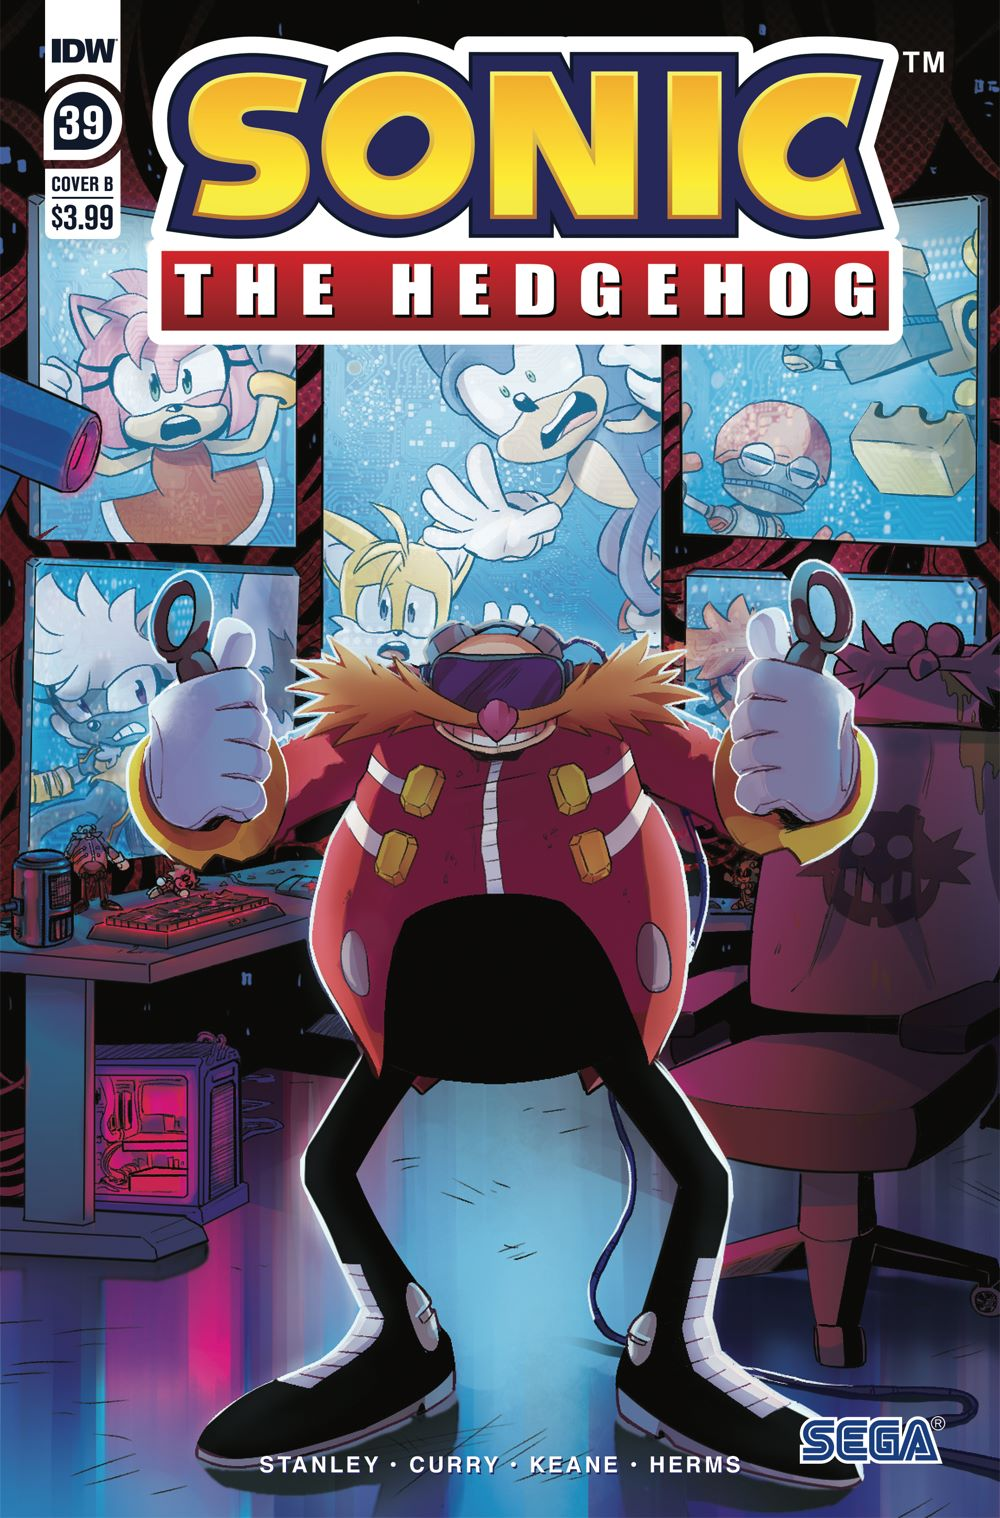 STH39_cvrB ComicList: IDW Publishing New Releases for 05/12/2021